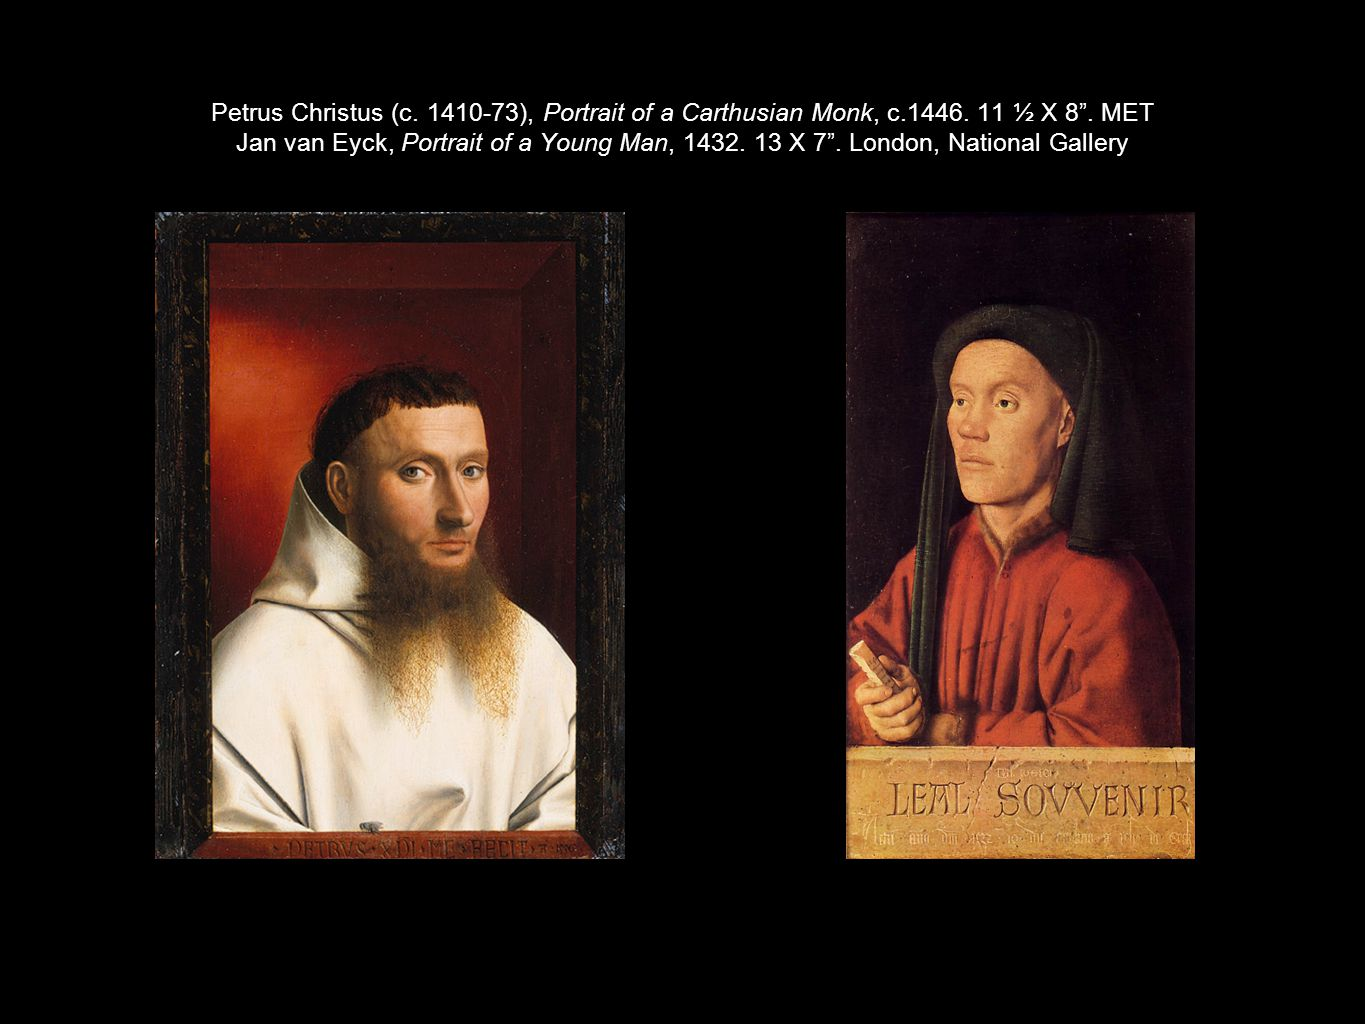 Petrus Christus (c ), Portrait of a Carthusian Monk, c. 1446